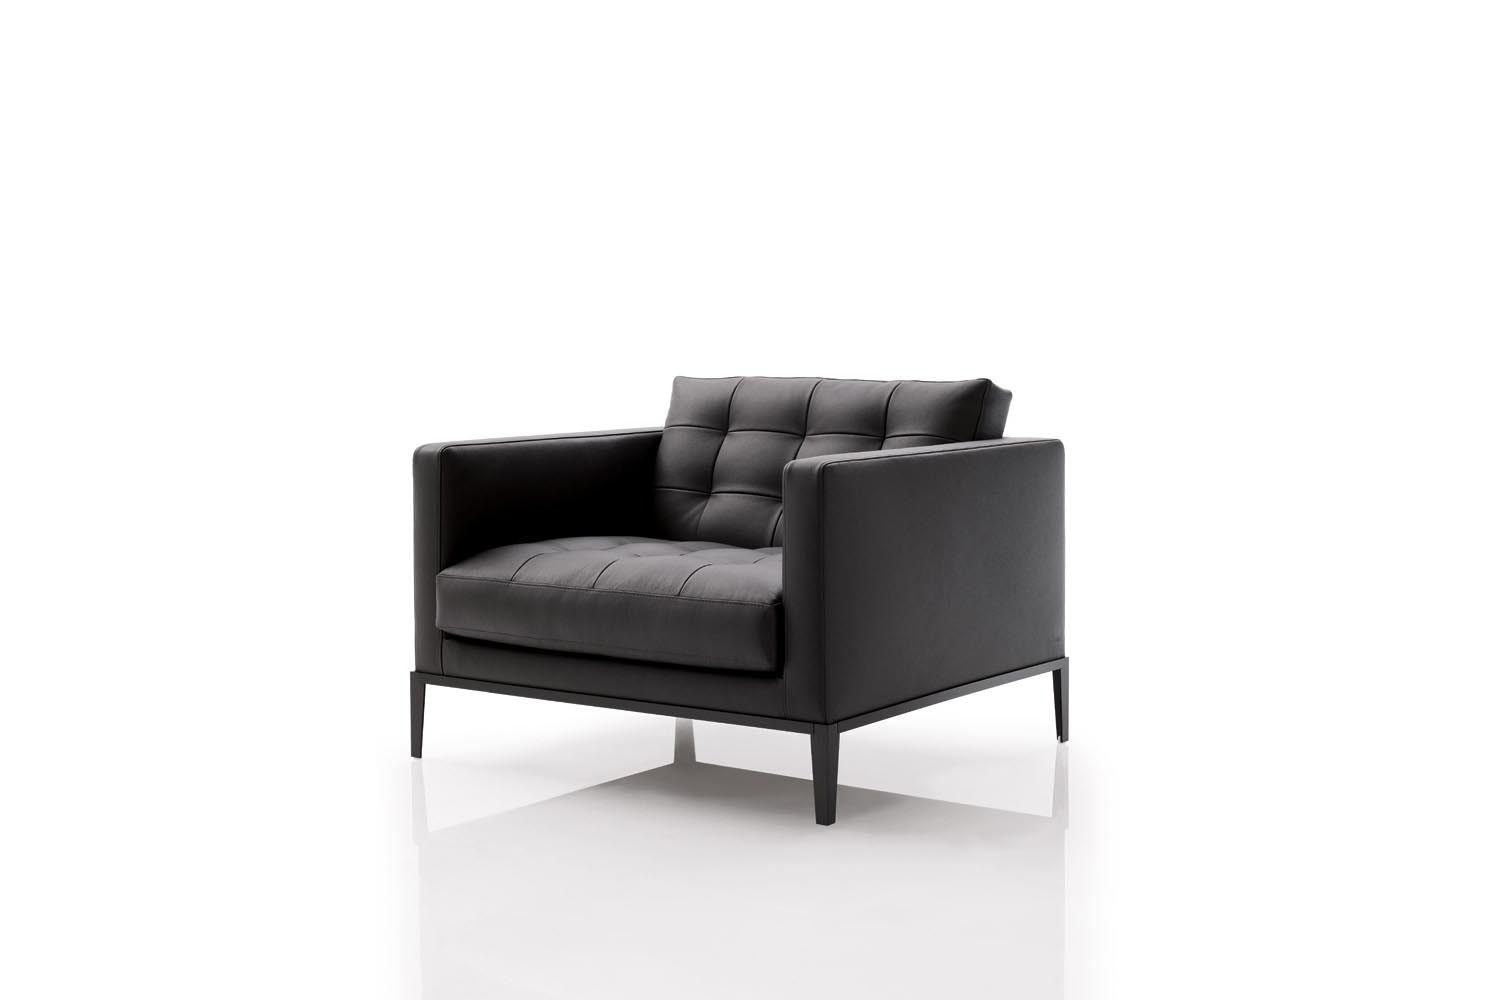 AC Lounge Armchair by Antonio Citterio for Maxalto